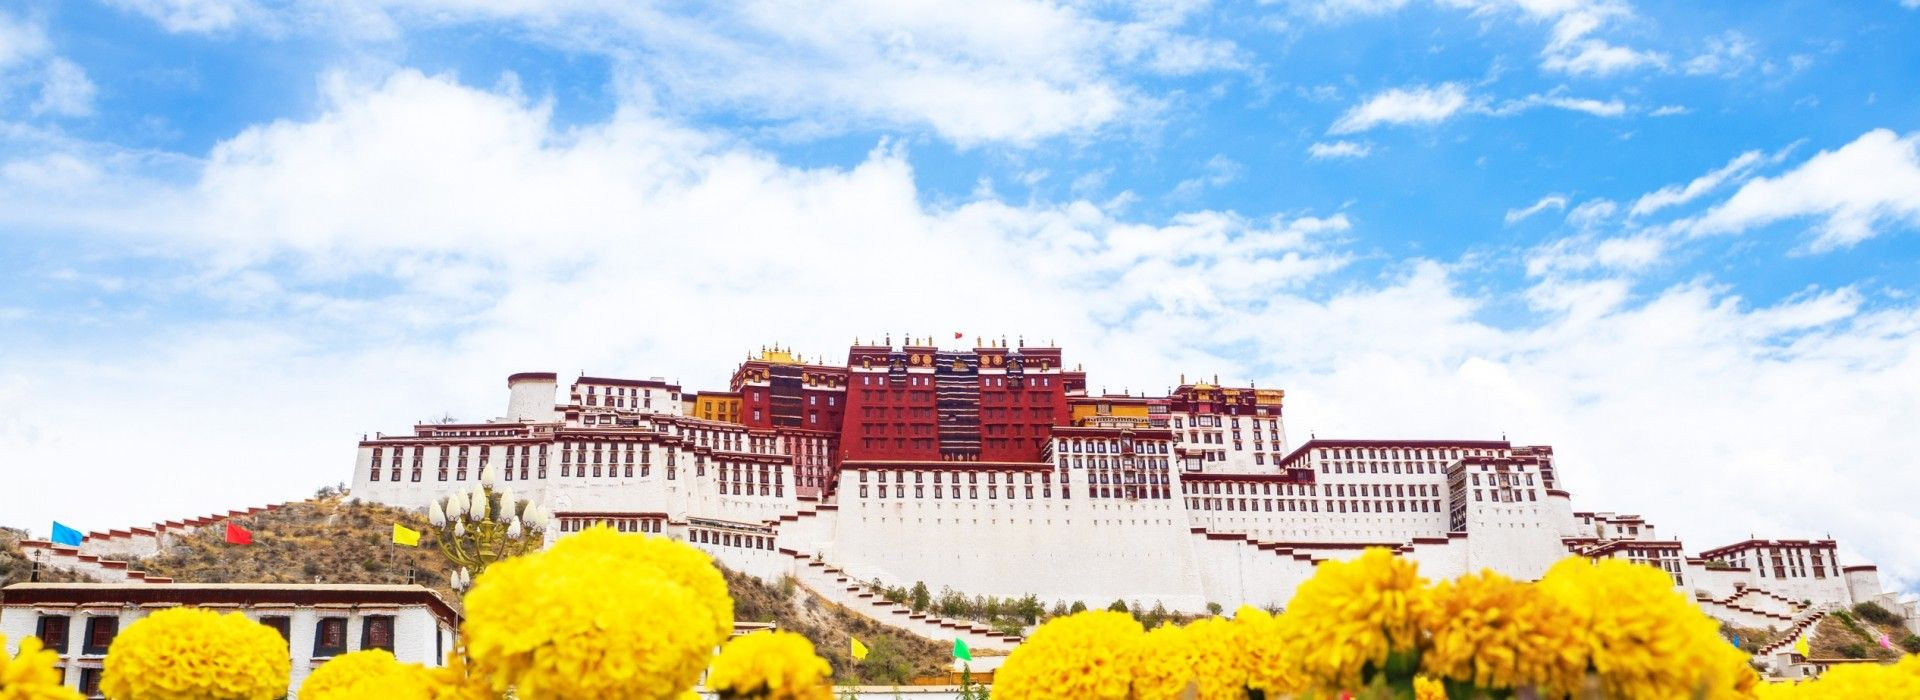 Lhasa Tours and Travel to Lhasa